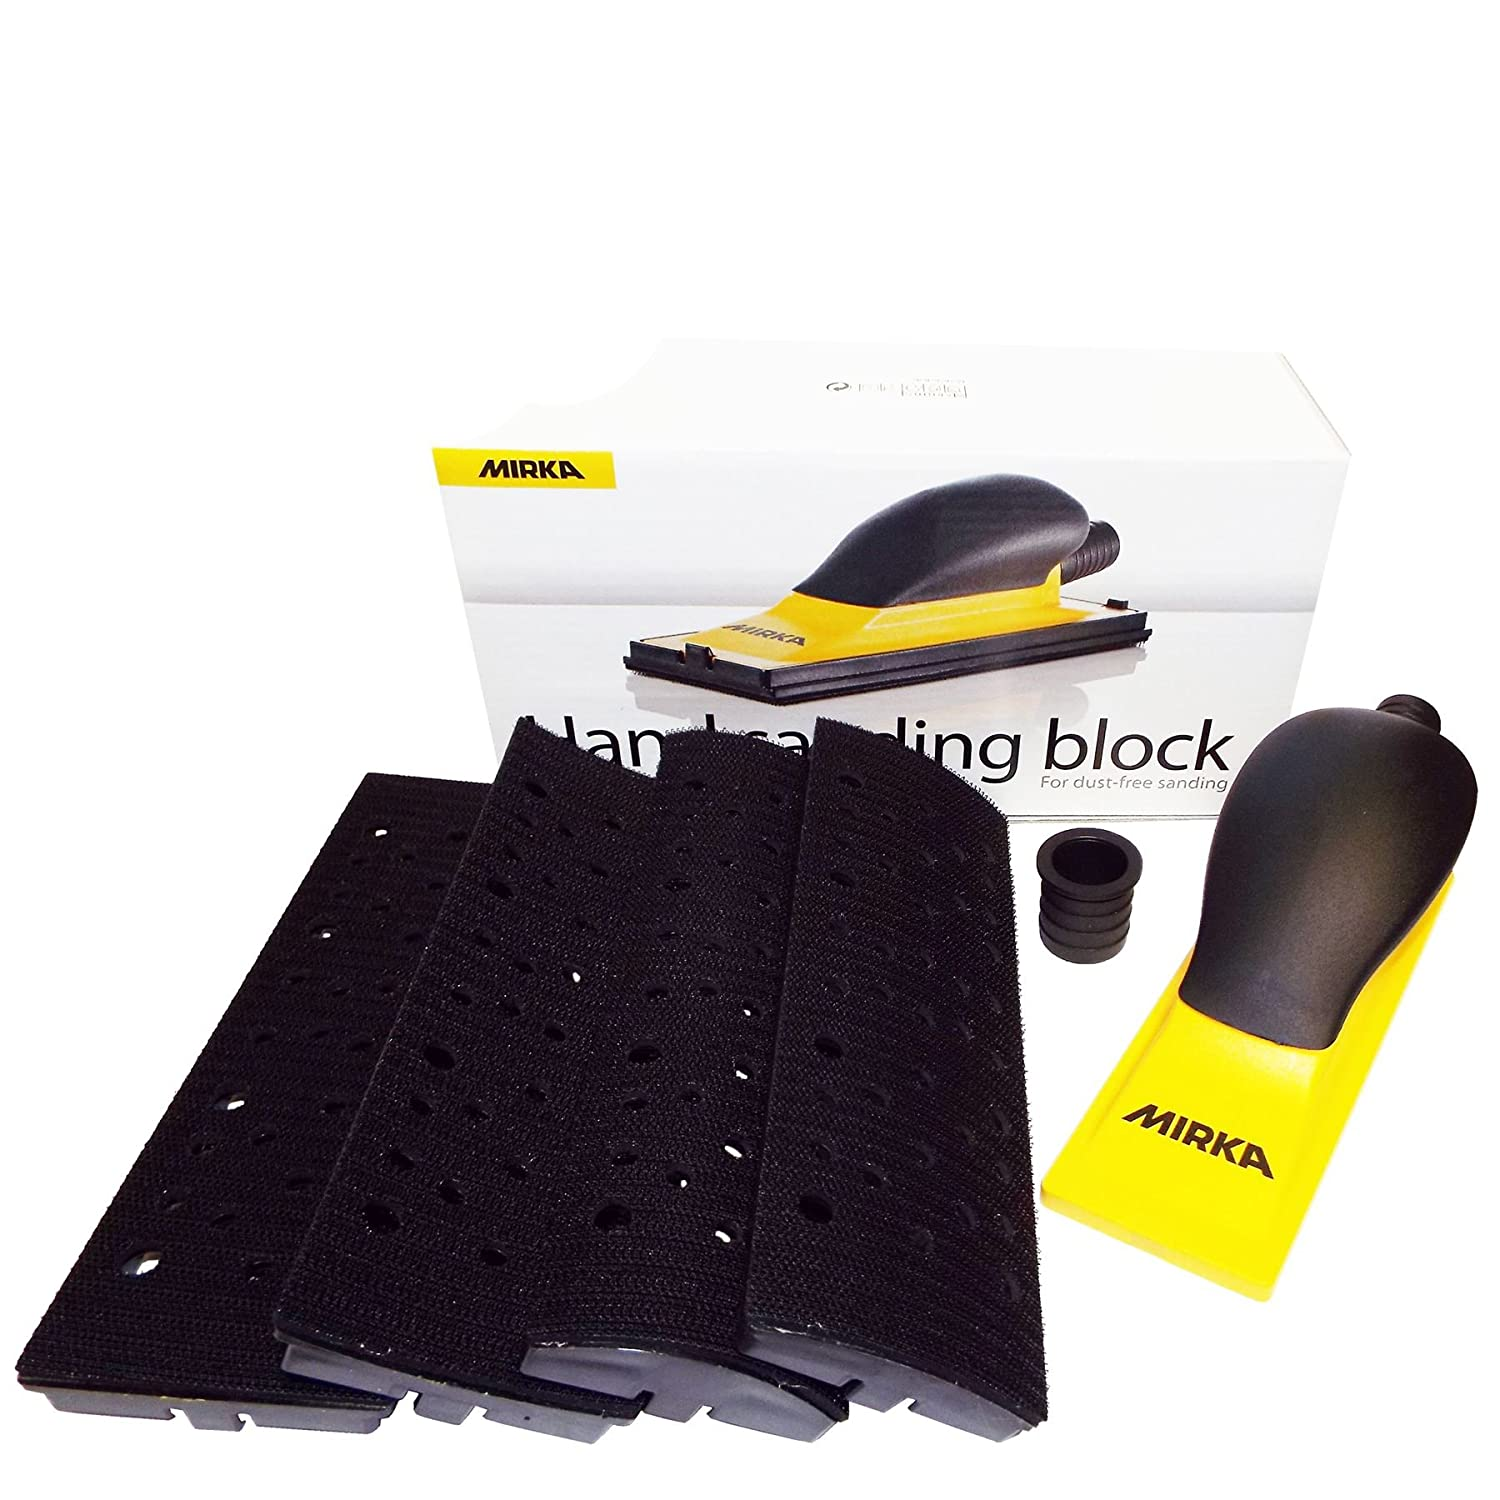 Mirka No Dust Hand Sanding Kit 70mm x 198mm With Hose and 5 Sanding Strips